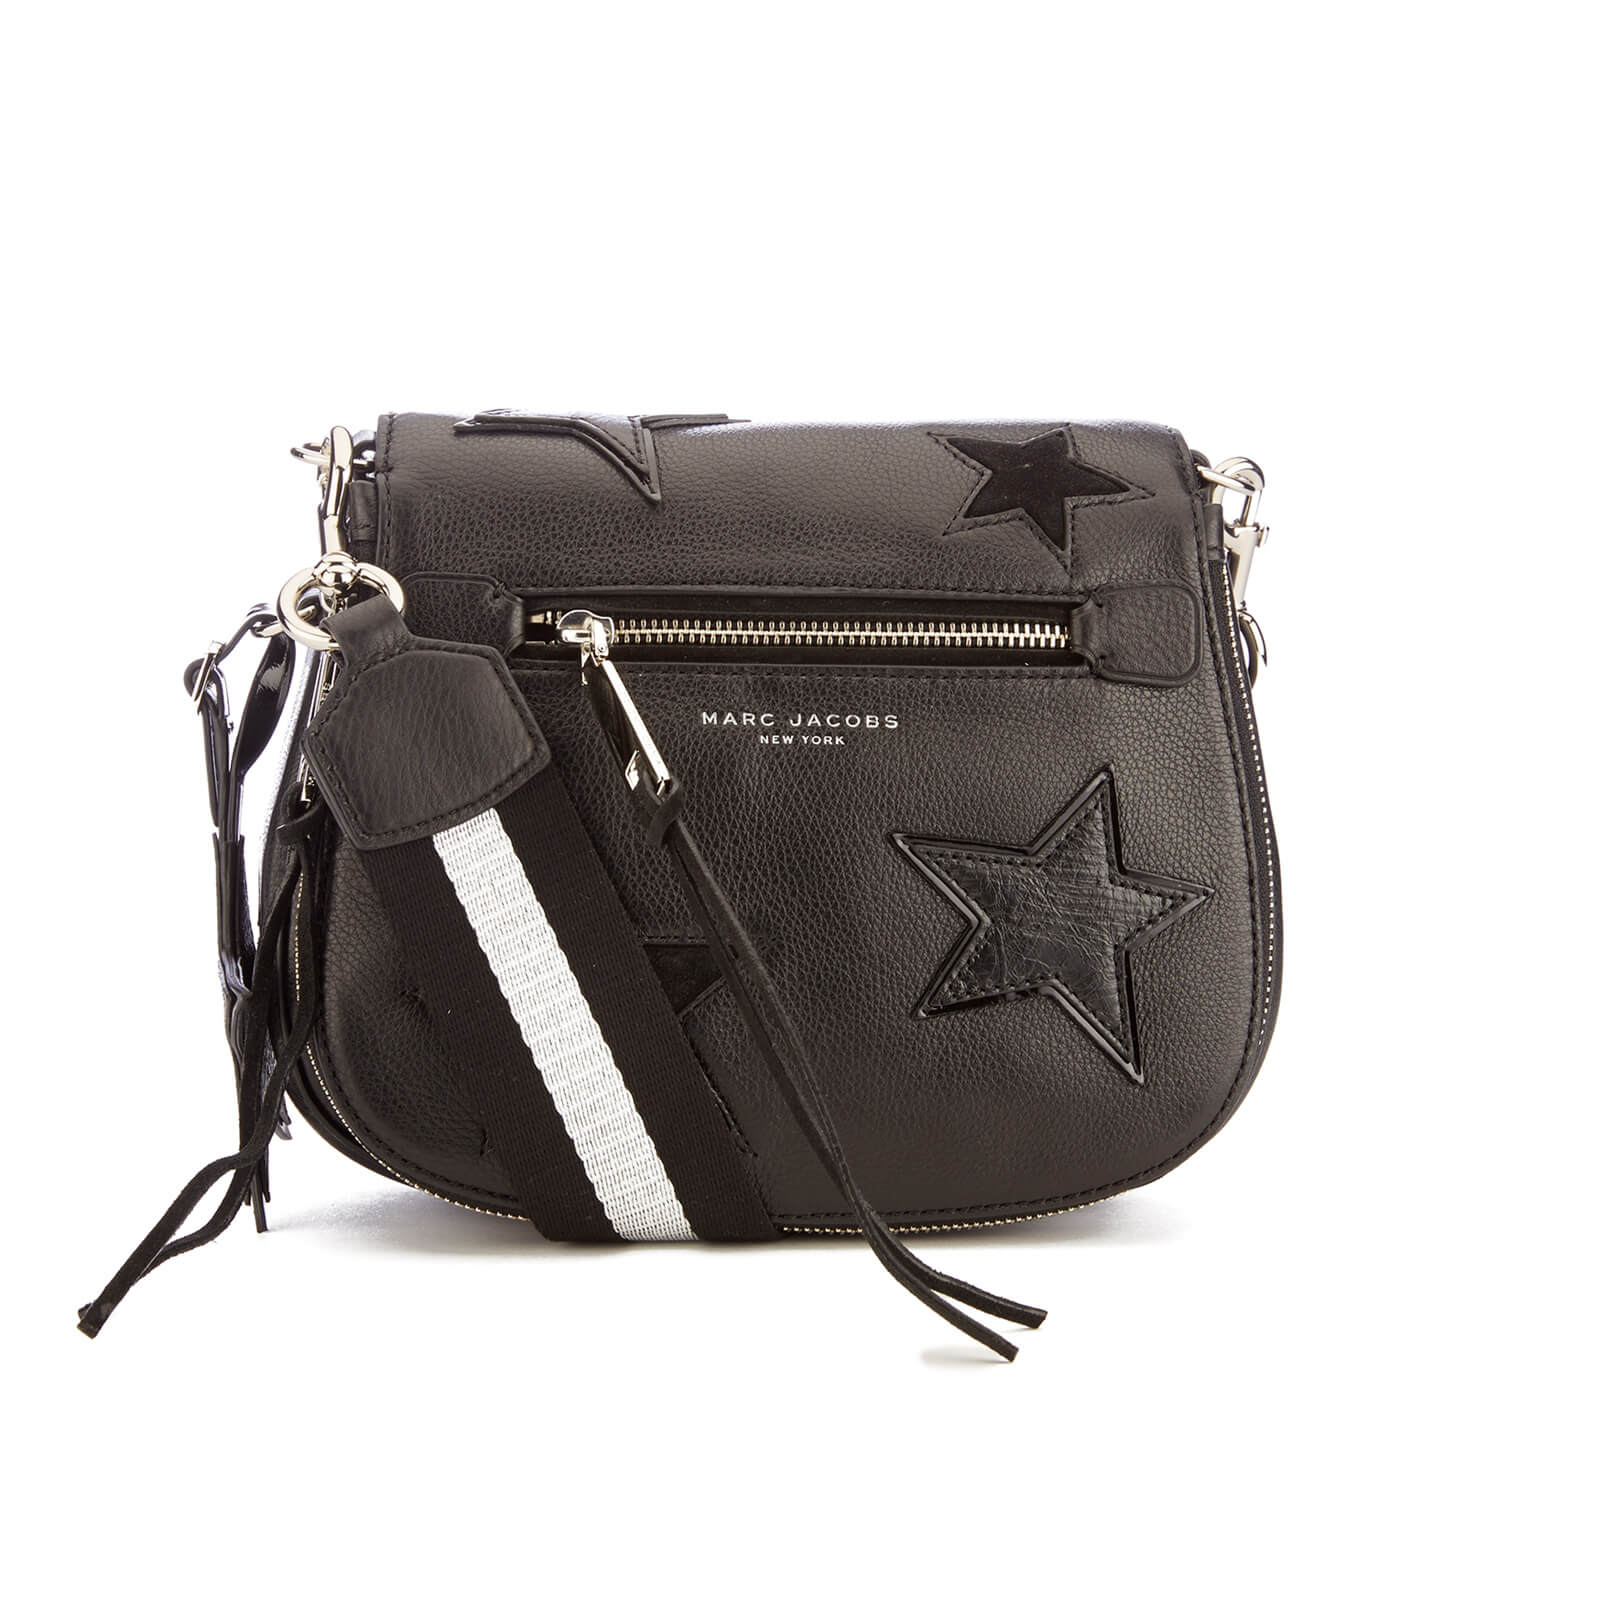 19552e3bdd95 Marc Jacobs Women s Star Patchwork Small Saddle Bag - Black Multi - Free UK  Delivery over £50